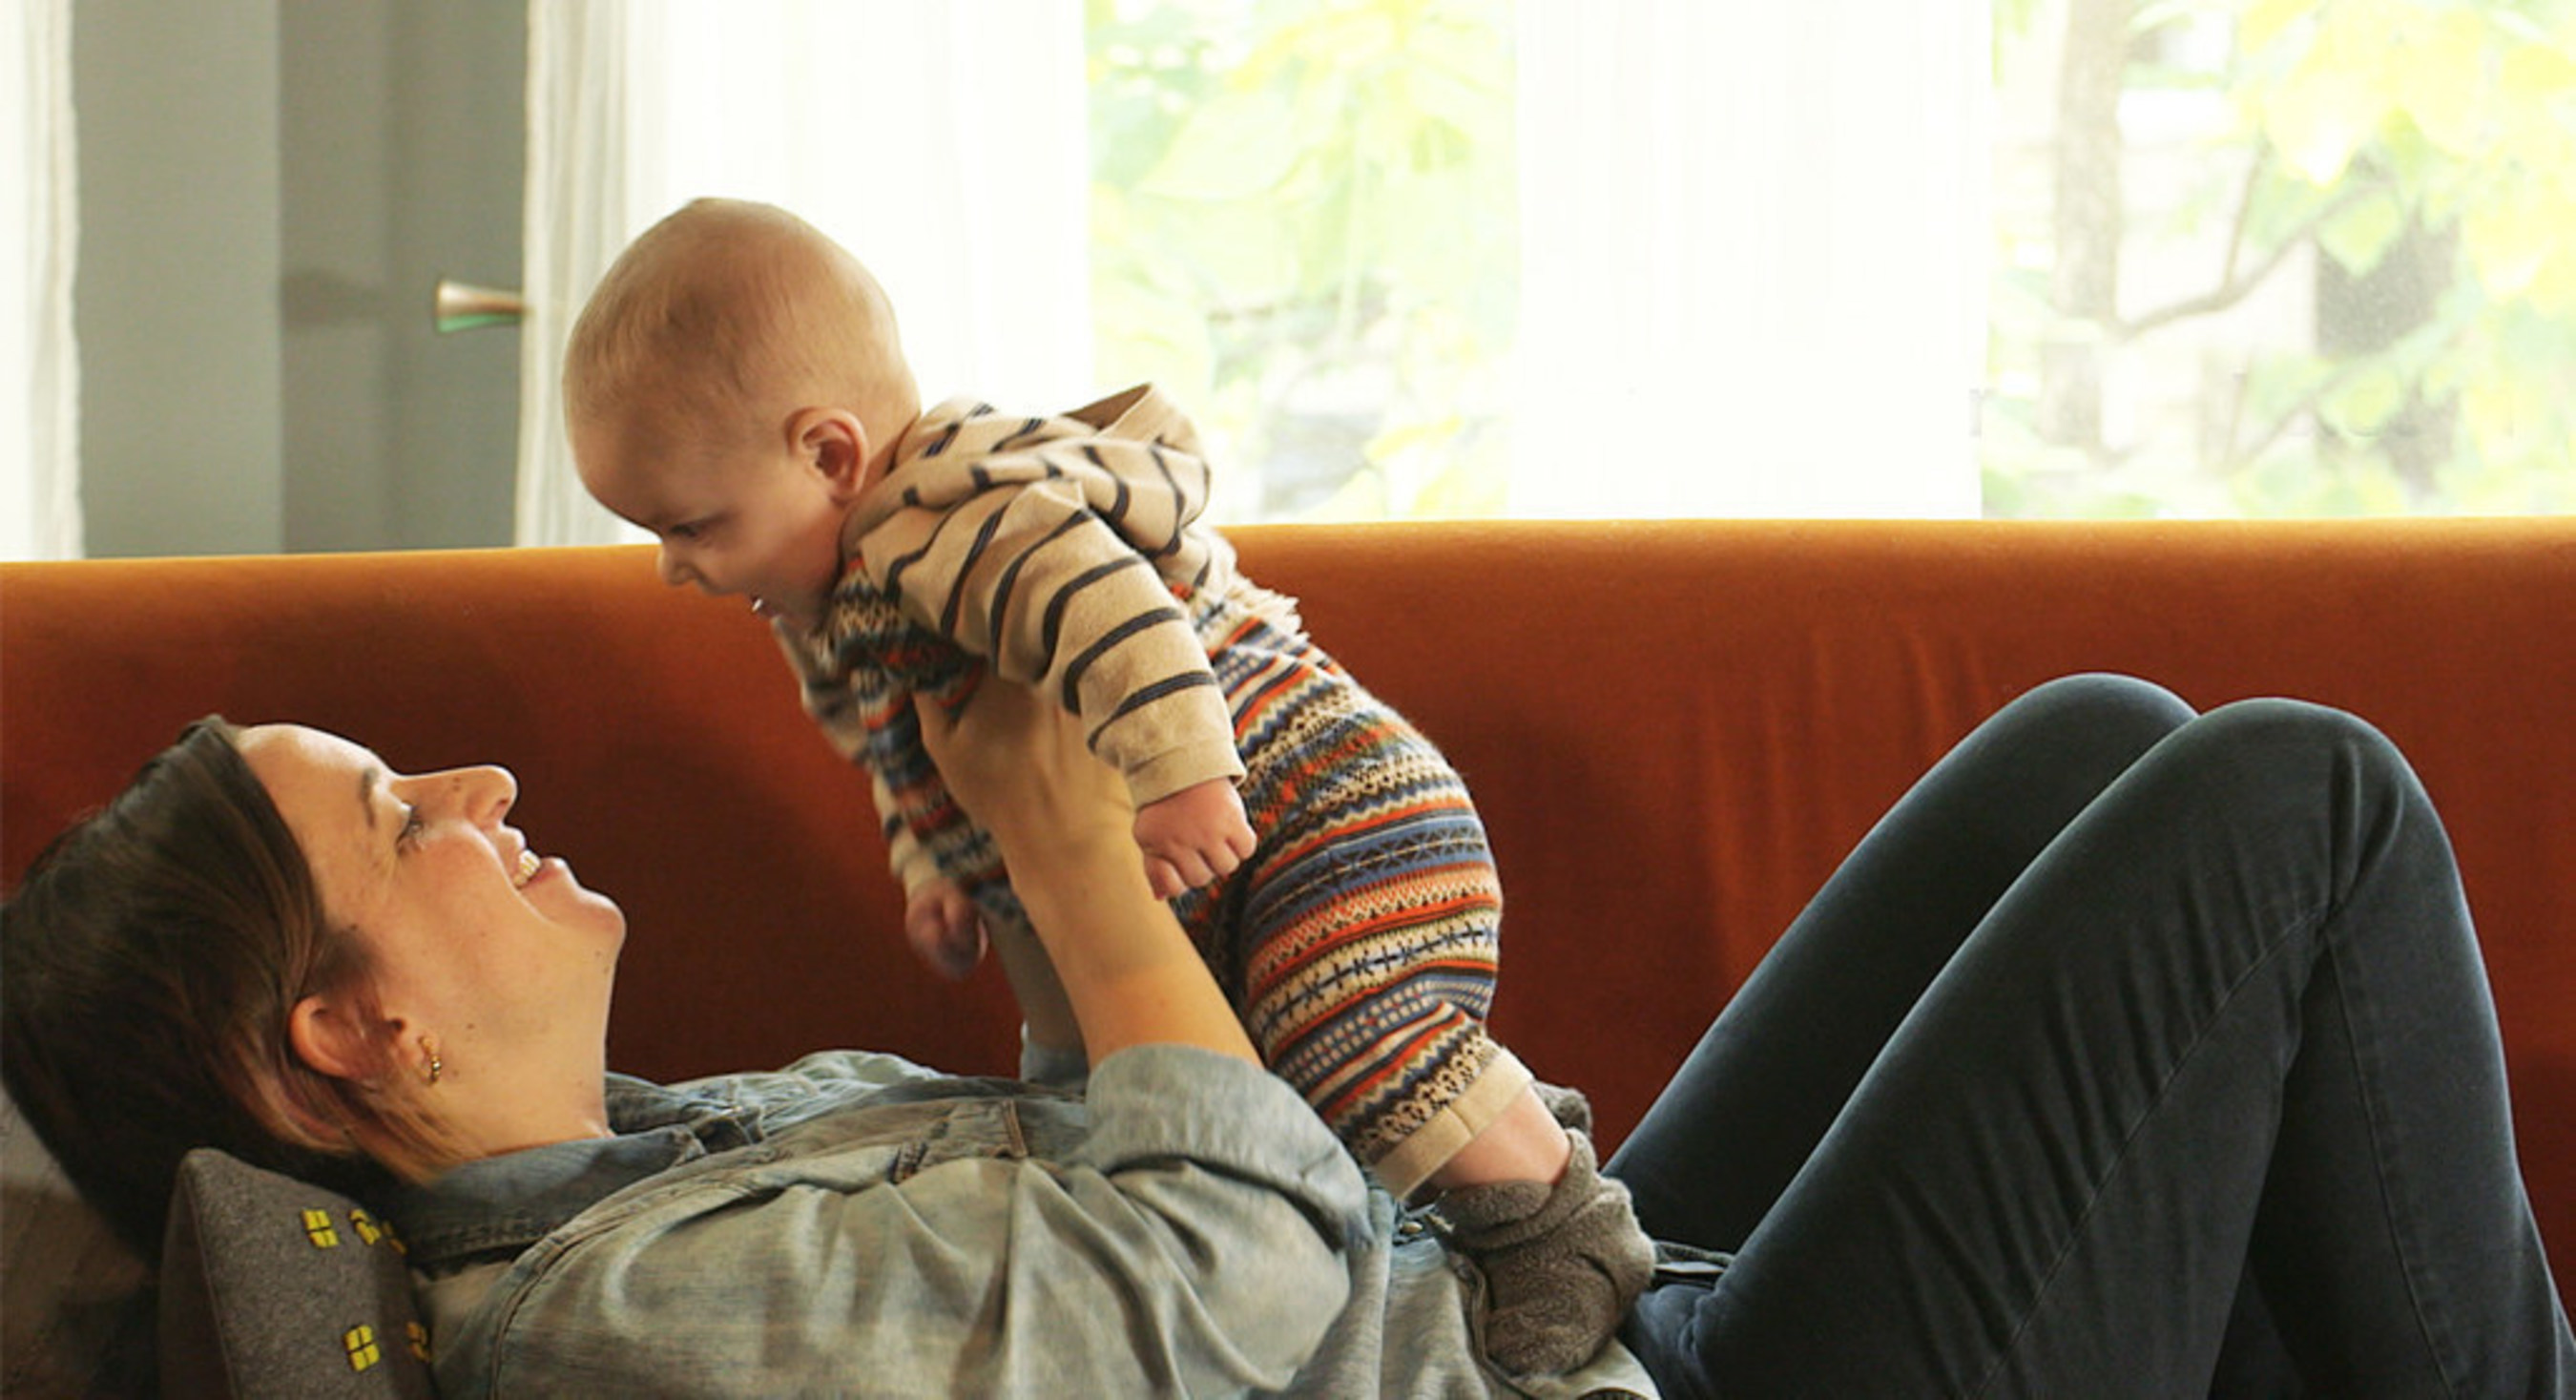 Feature-Length Documentary On Paid Family Leave Announced By Chicago Film Director Ky Dickens